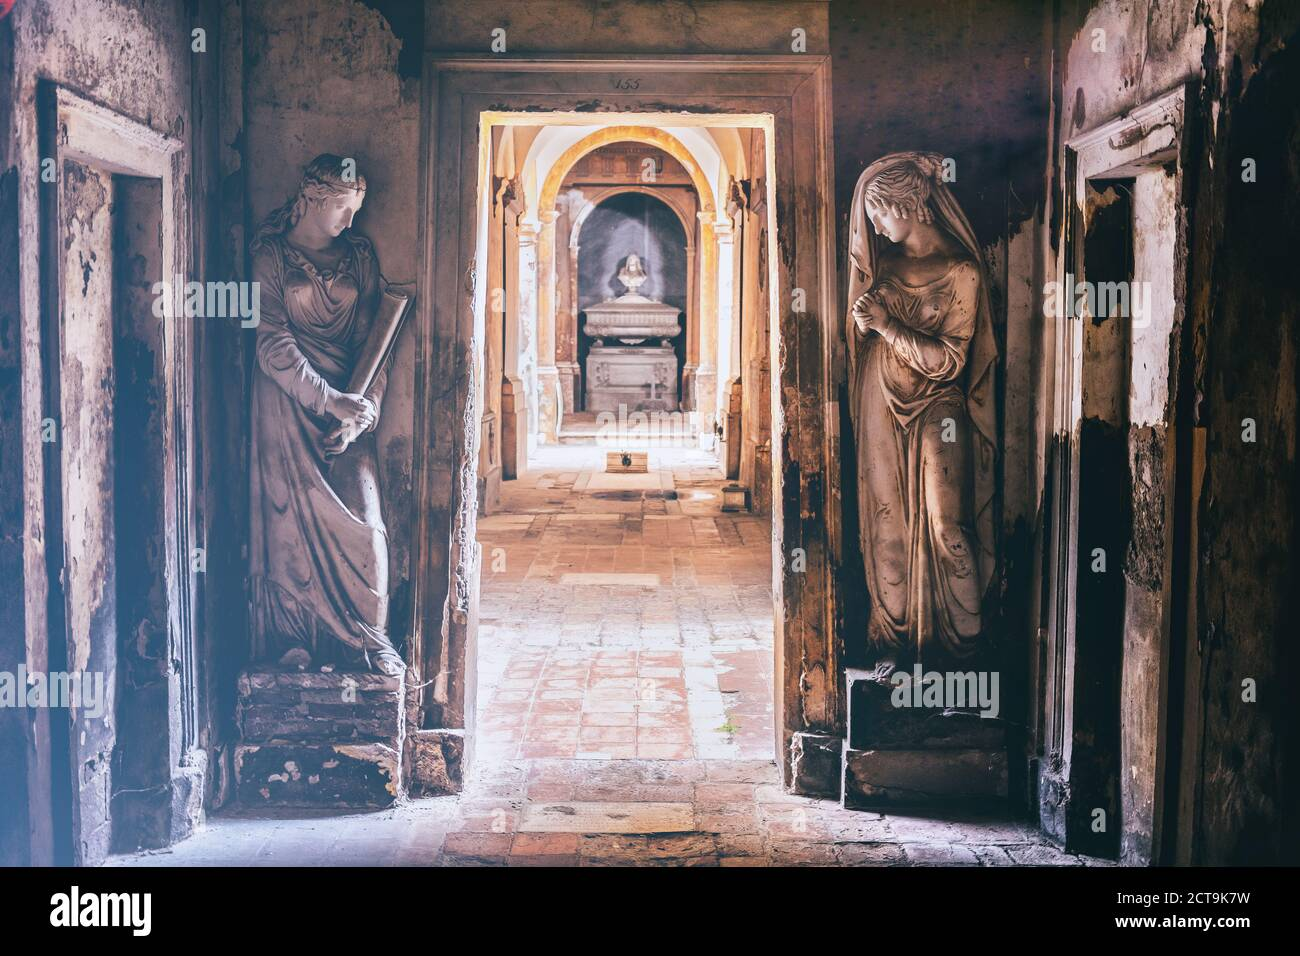 cemetery corridor background with two statues in a vintage camera film effect look. Stock Photo